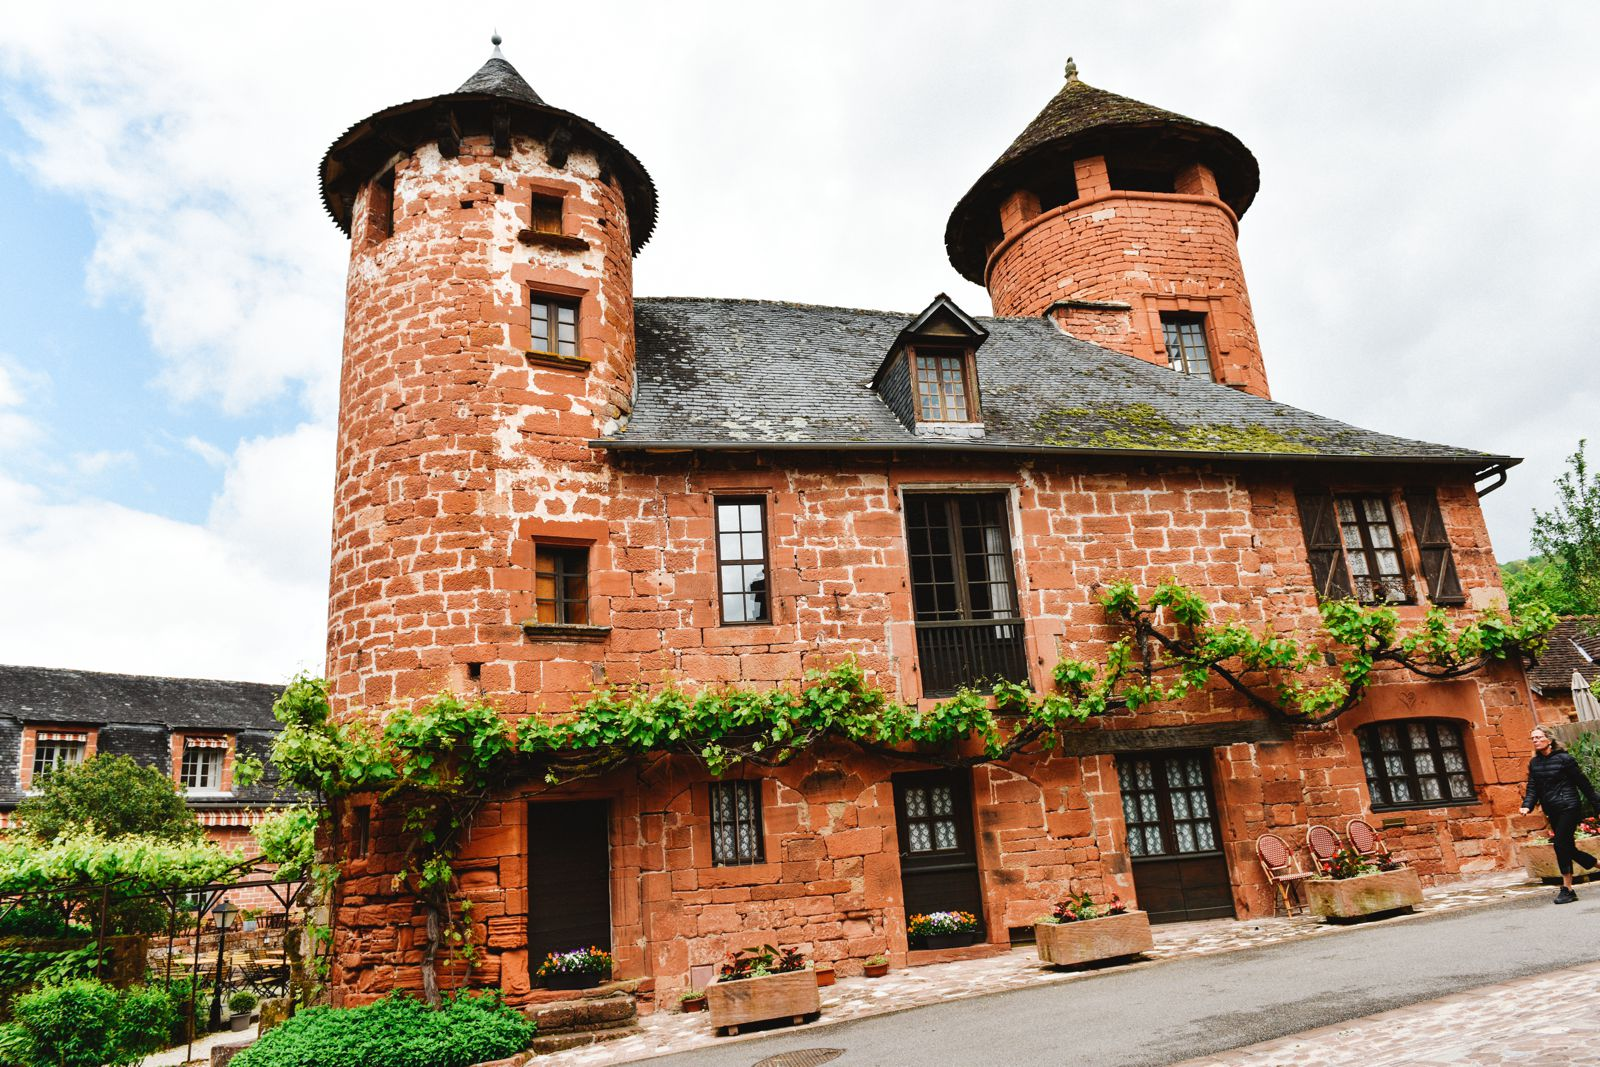 This Is The Most Beautiful Village In France - Collonges-La-Rouge (17)